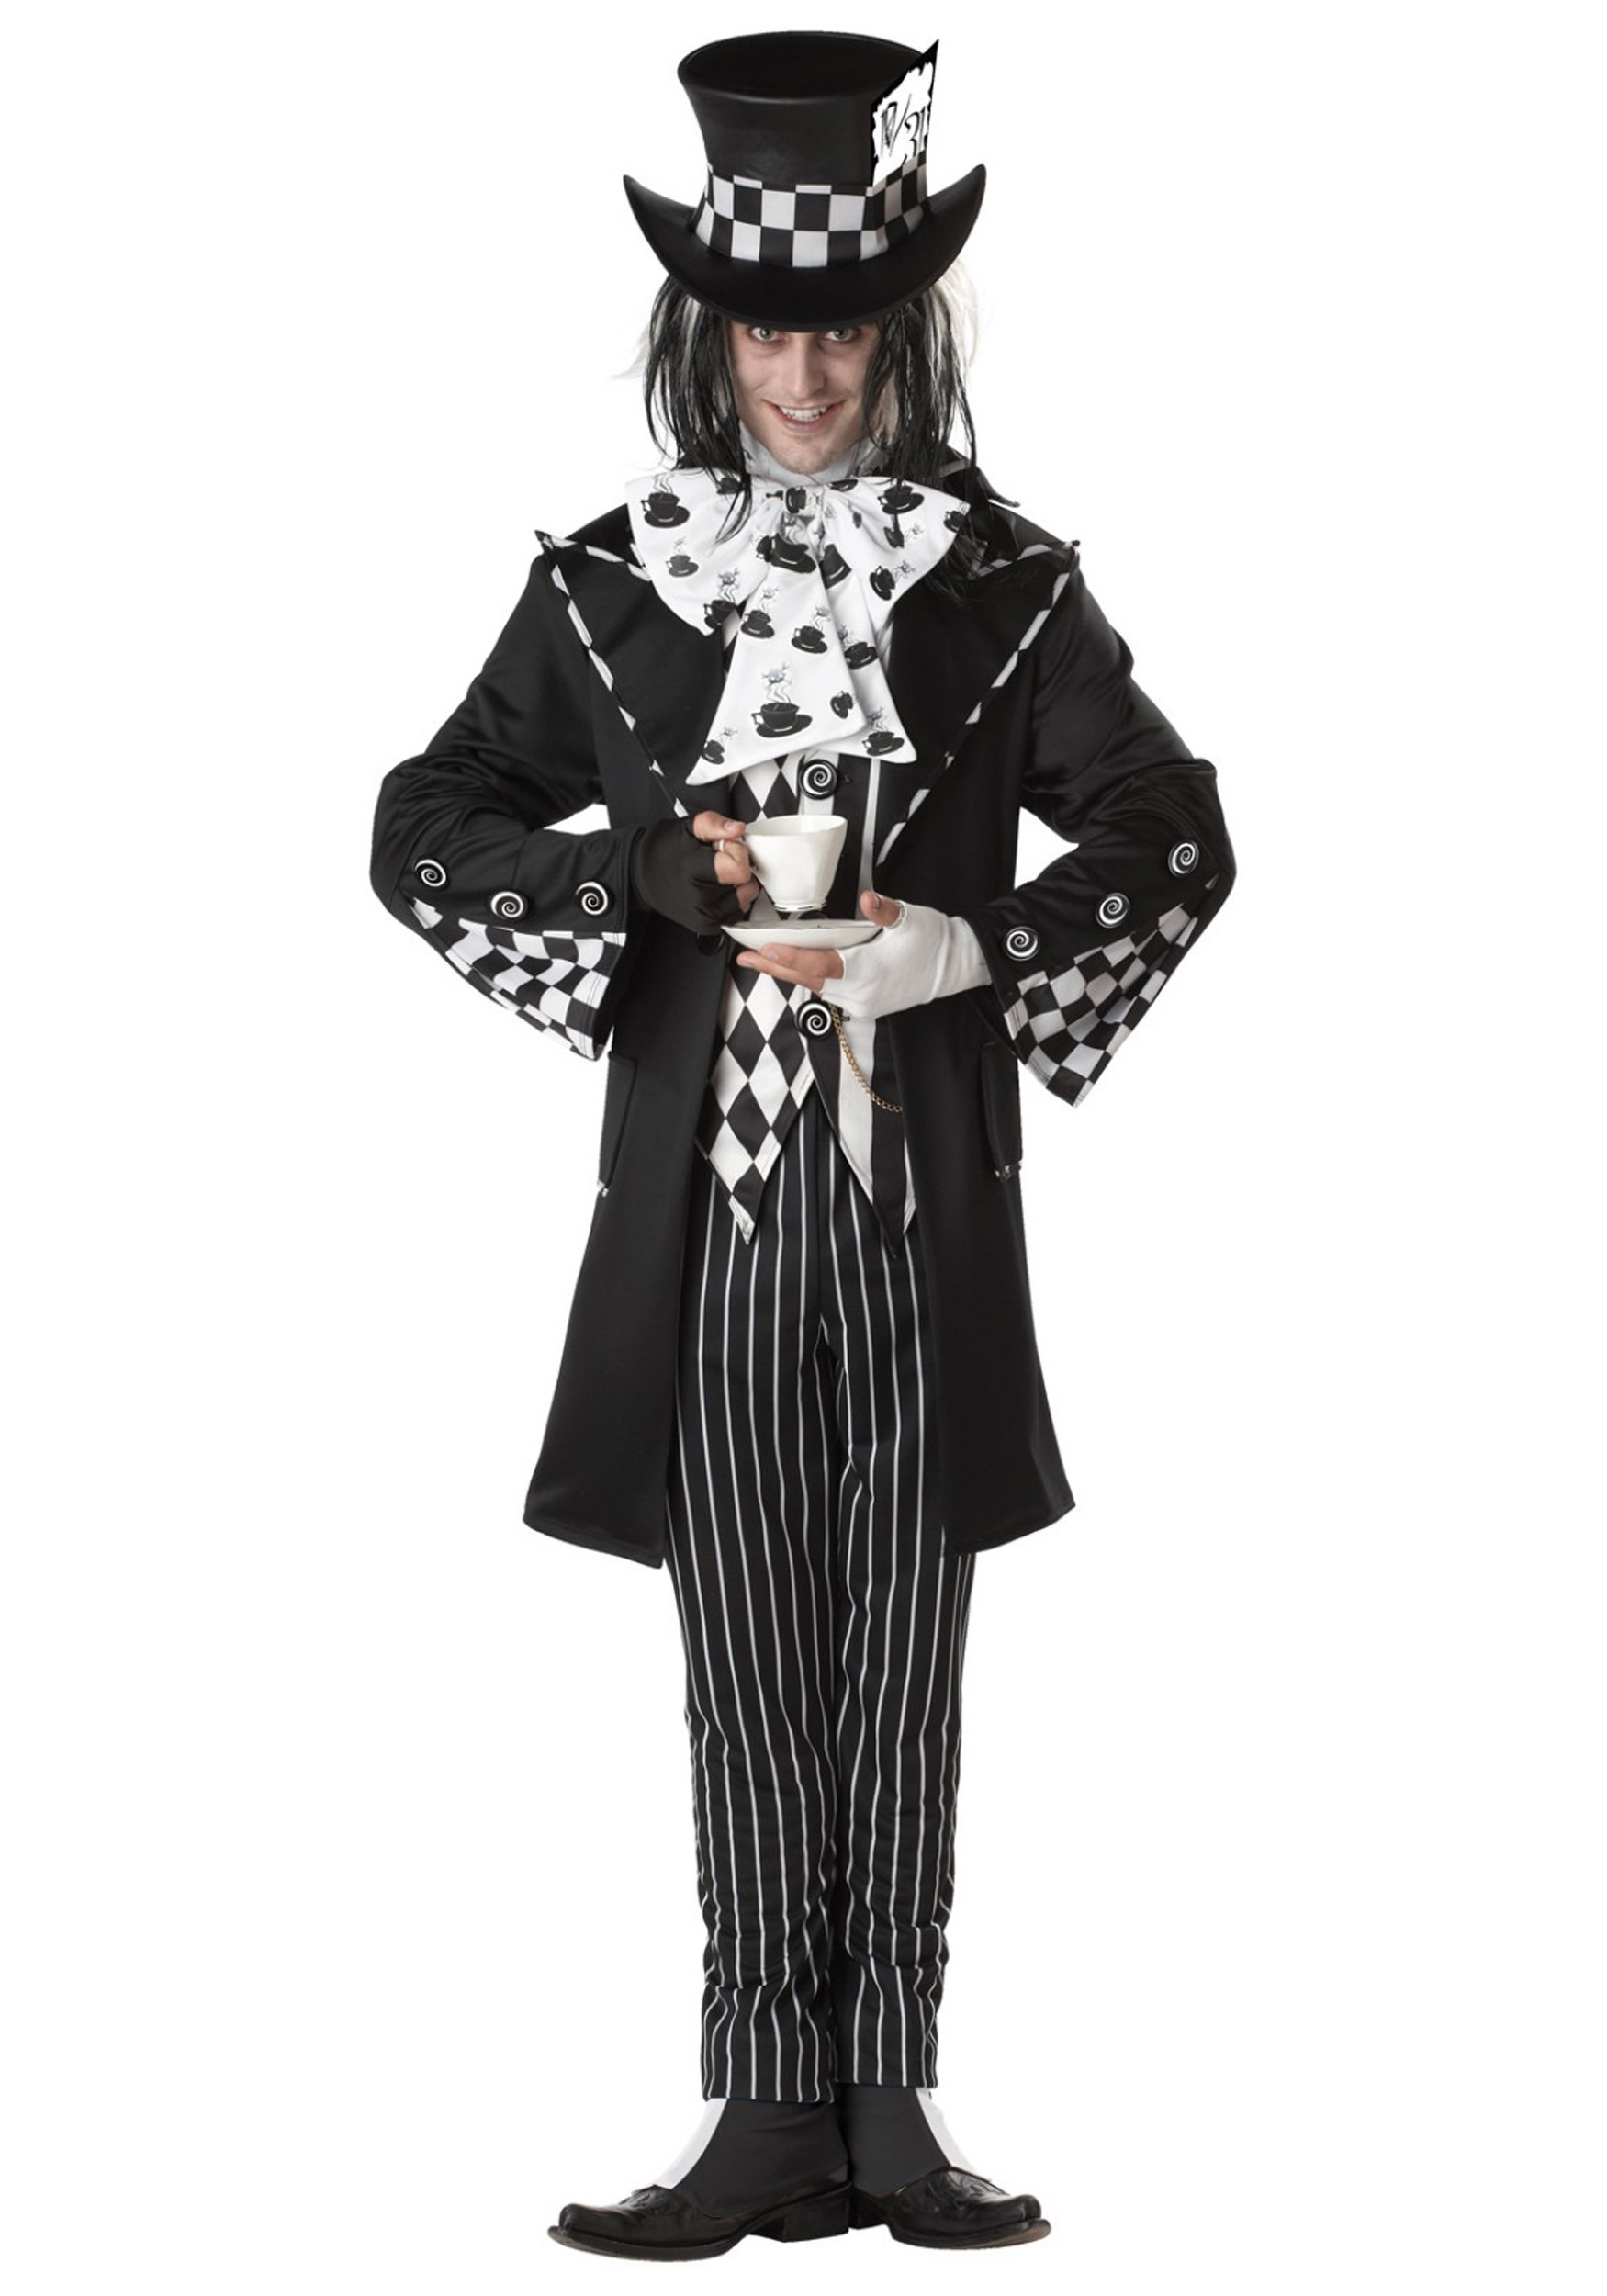 Alice In Wonderland Costumes - HalloweenCostumes.com